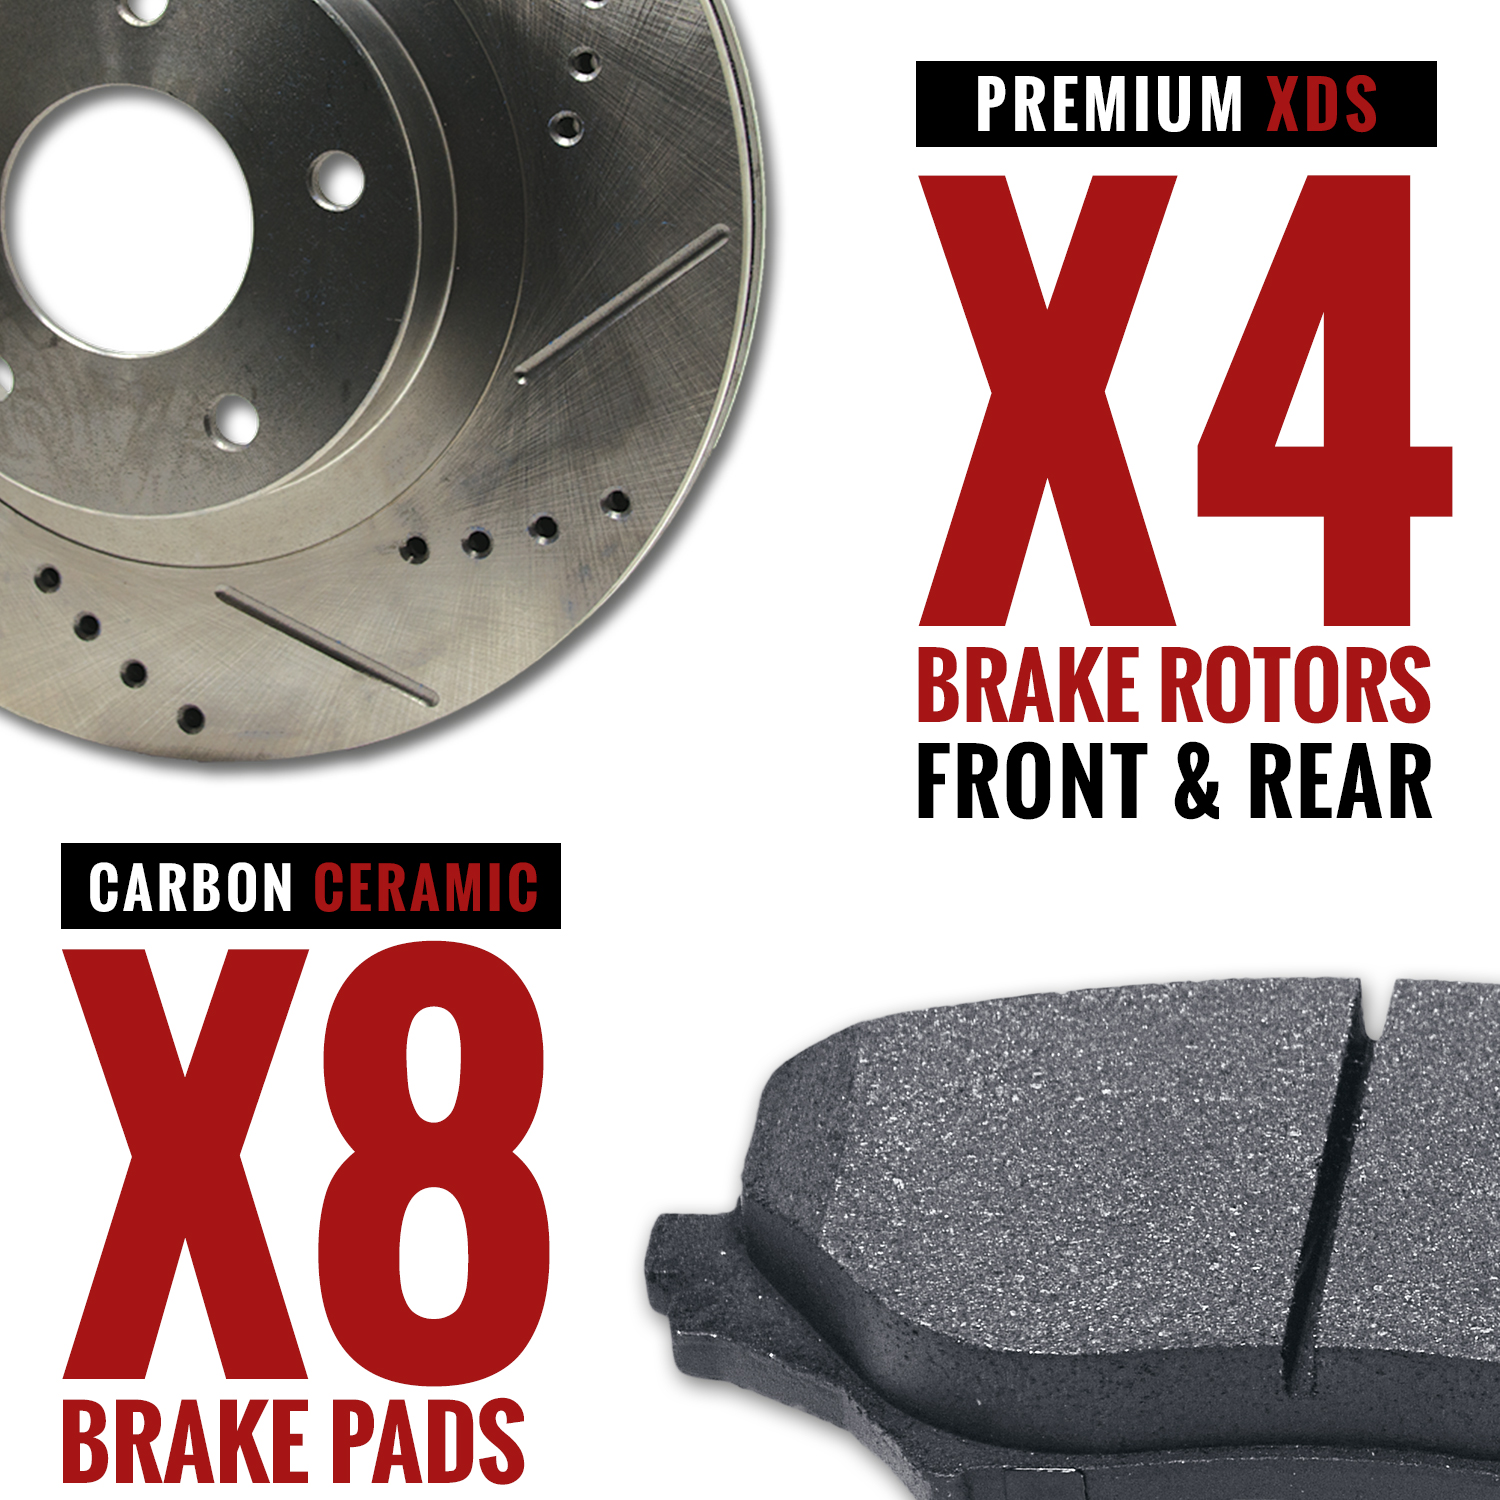 2010-GMC-Sierra-3500HD-w-SRW-Slotted-Drilled-Rotors-Ceramic-Pads-F-R thumbnail 3